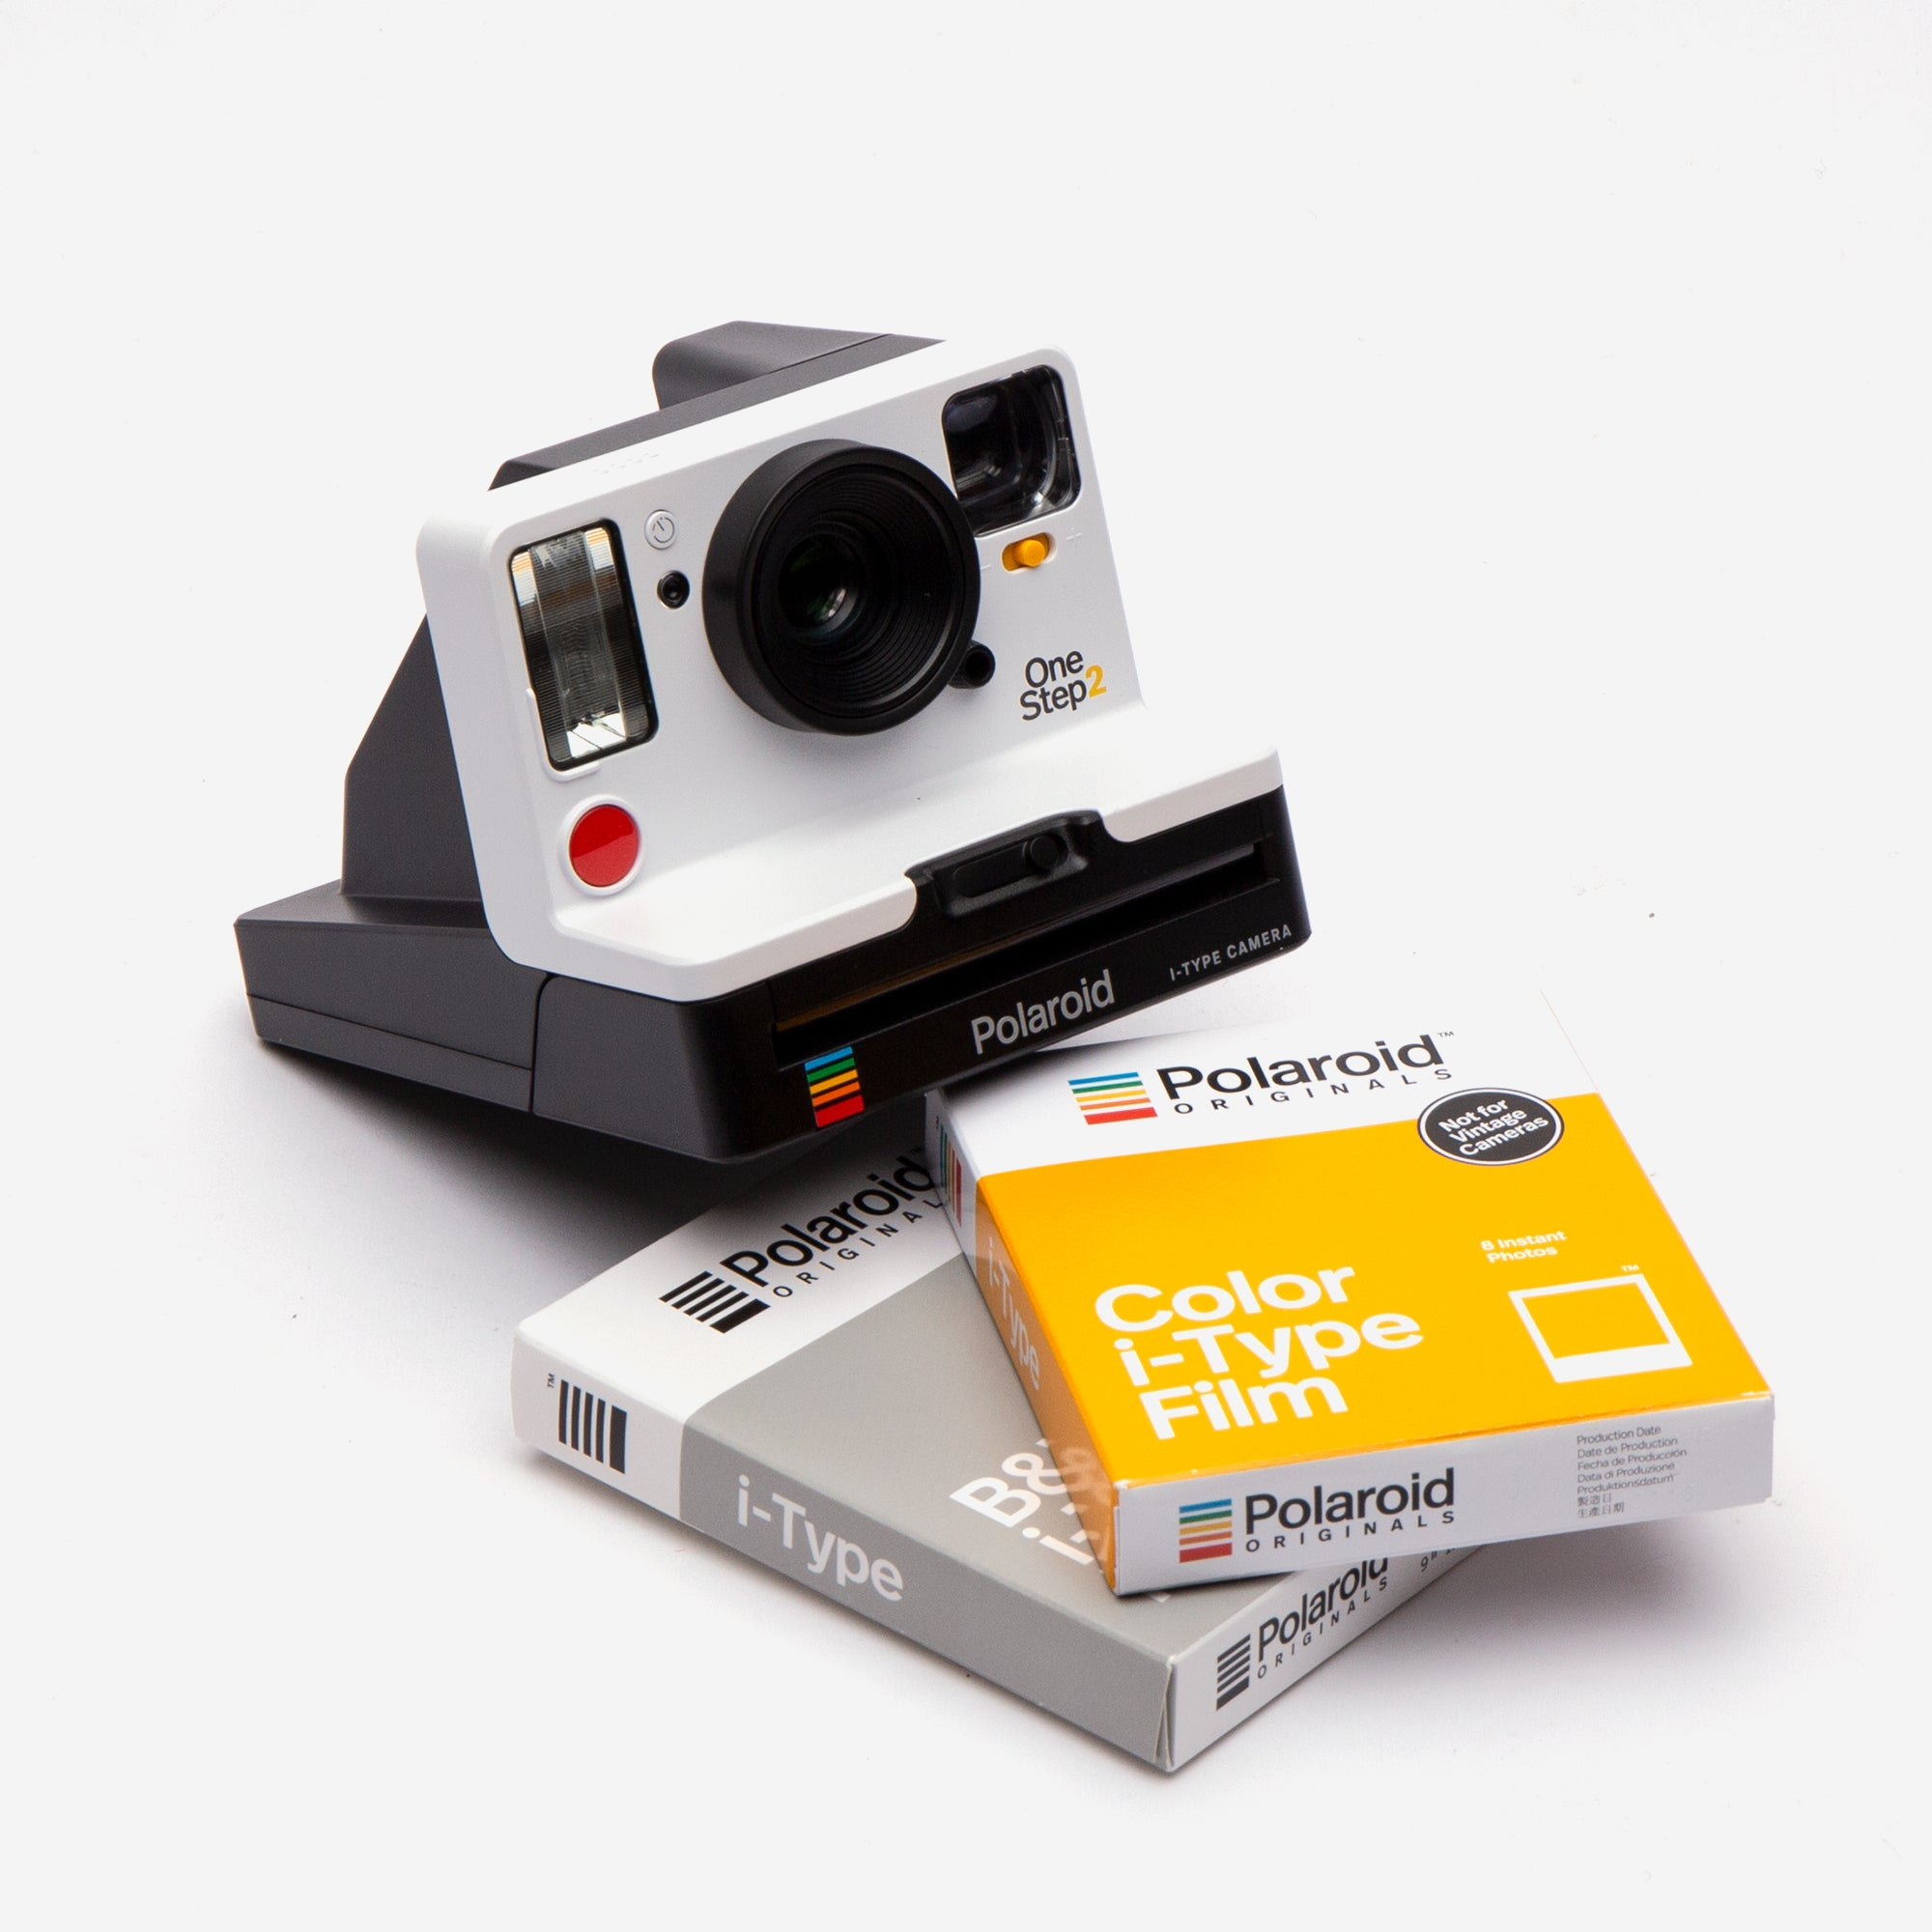 Polaroid OneStep 2 Camera And Film Set